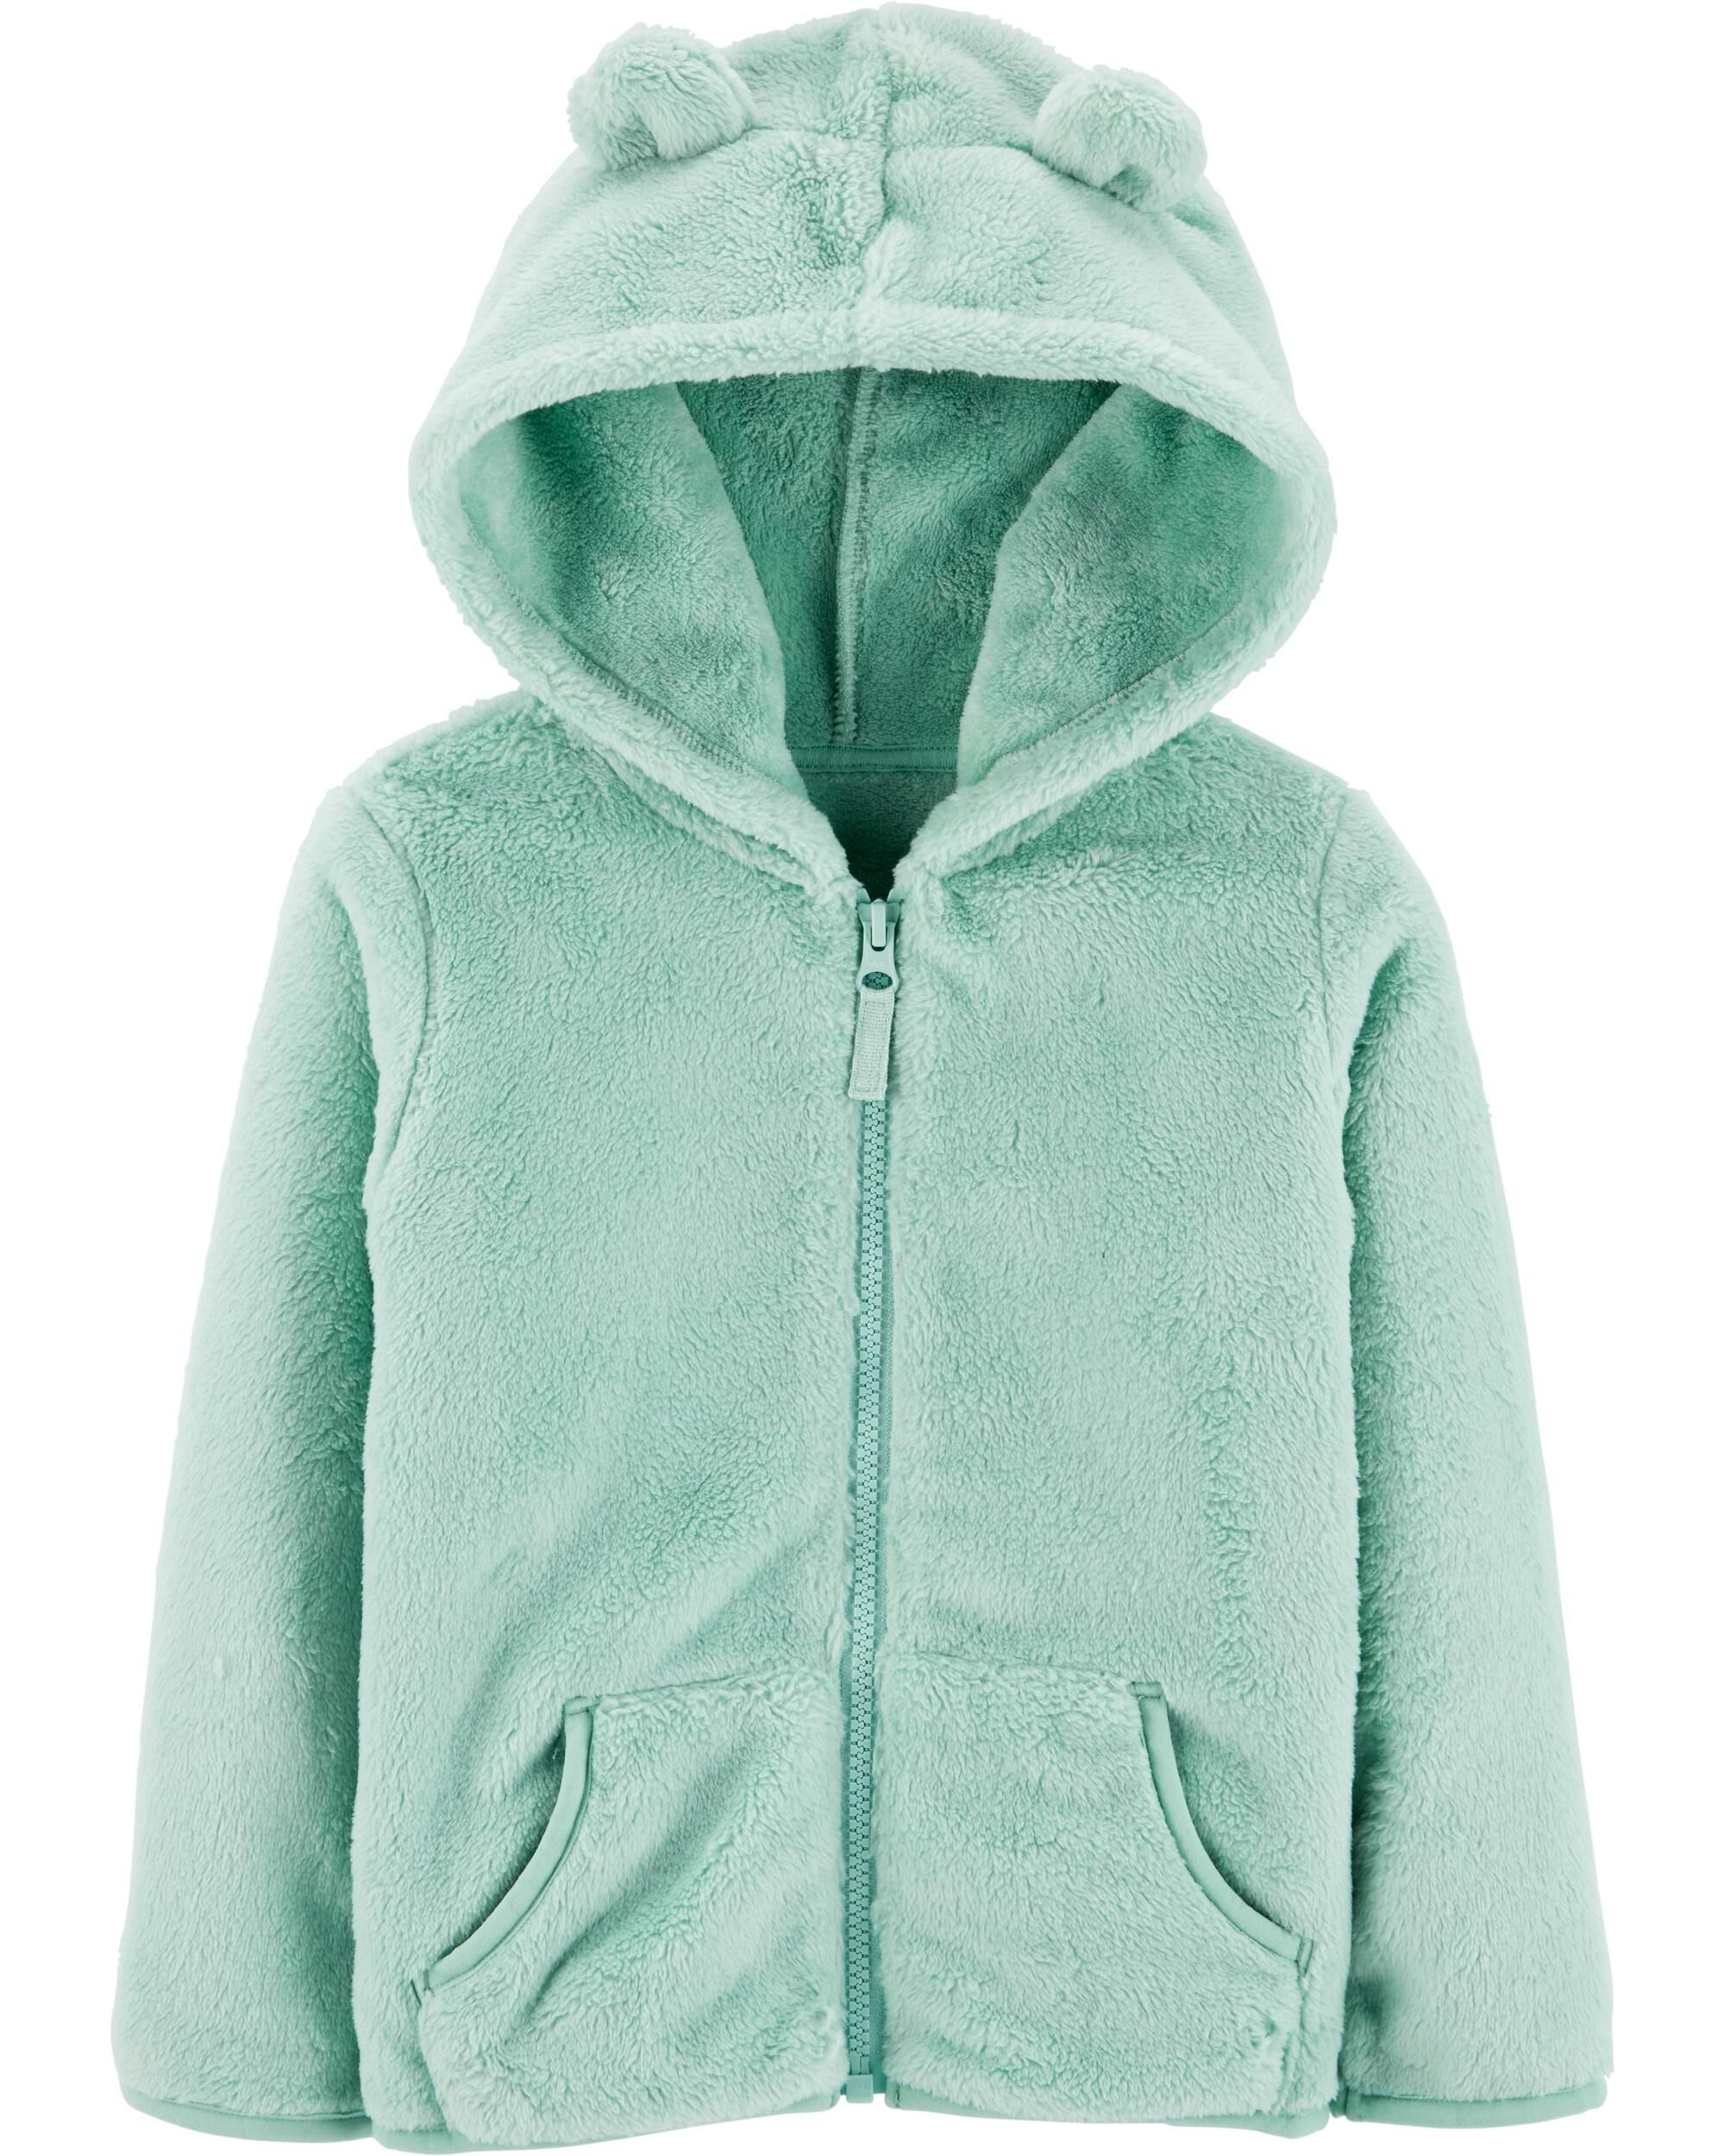 *CLEARANCE* Zip-Up Fuzzy Hoodie